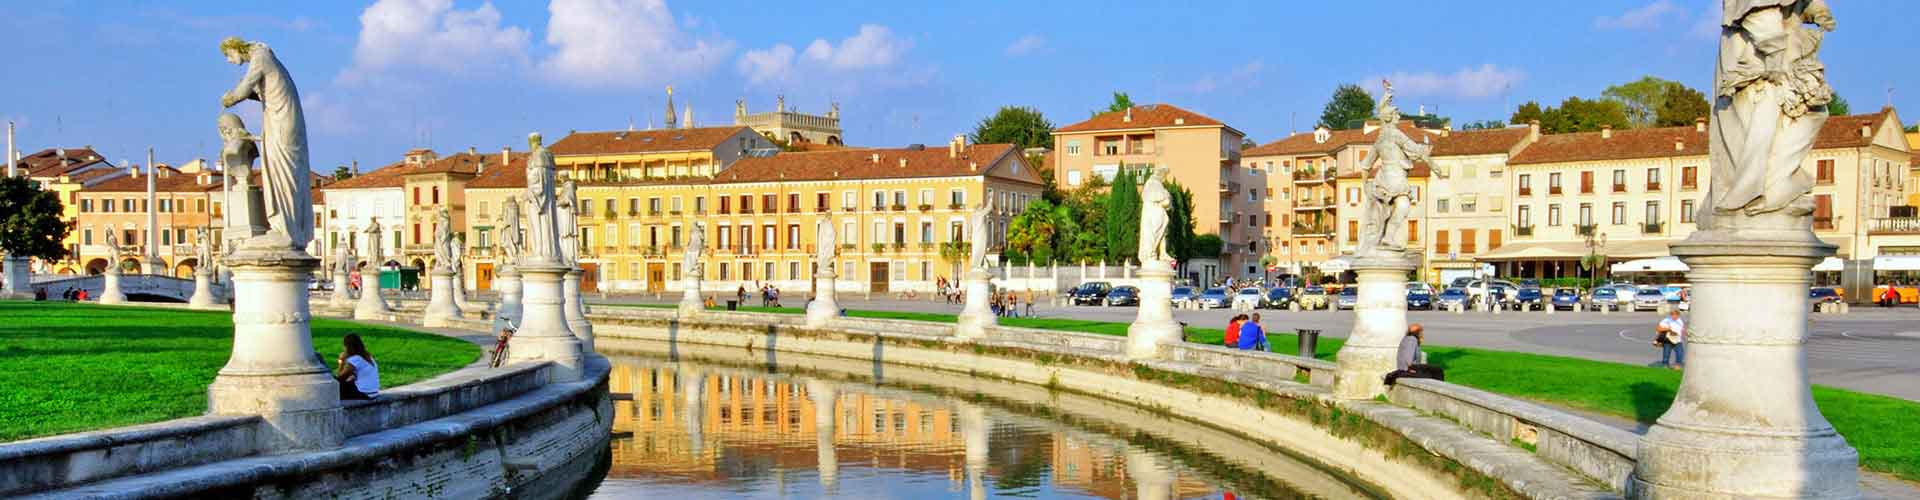 Padova – Hostels in Padova. Maps for Padova, Photos and Reviews for each hostel in Padova.